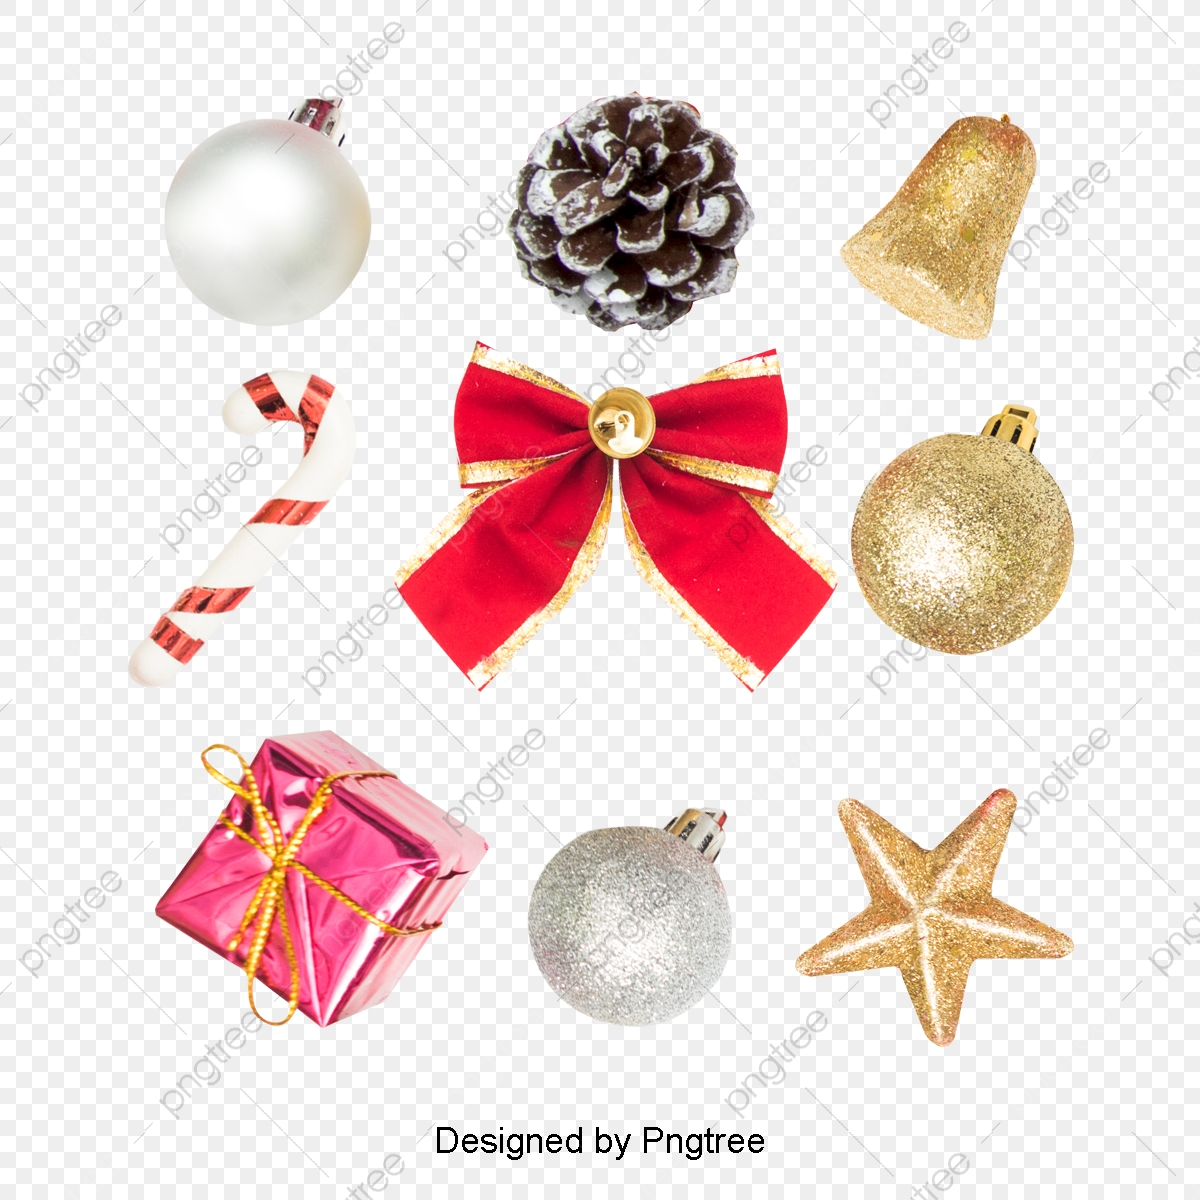 Christmas Decorations Png.A Collection Of Christmas Decorations Christmas Gifts